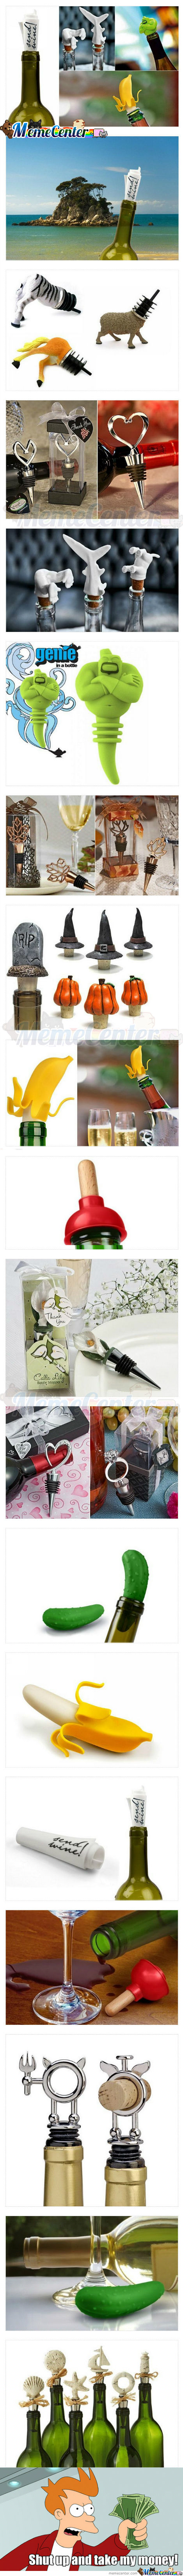 Some Awesome Wine Stopper